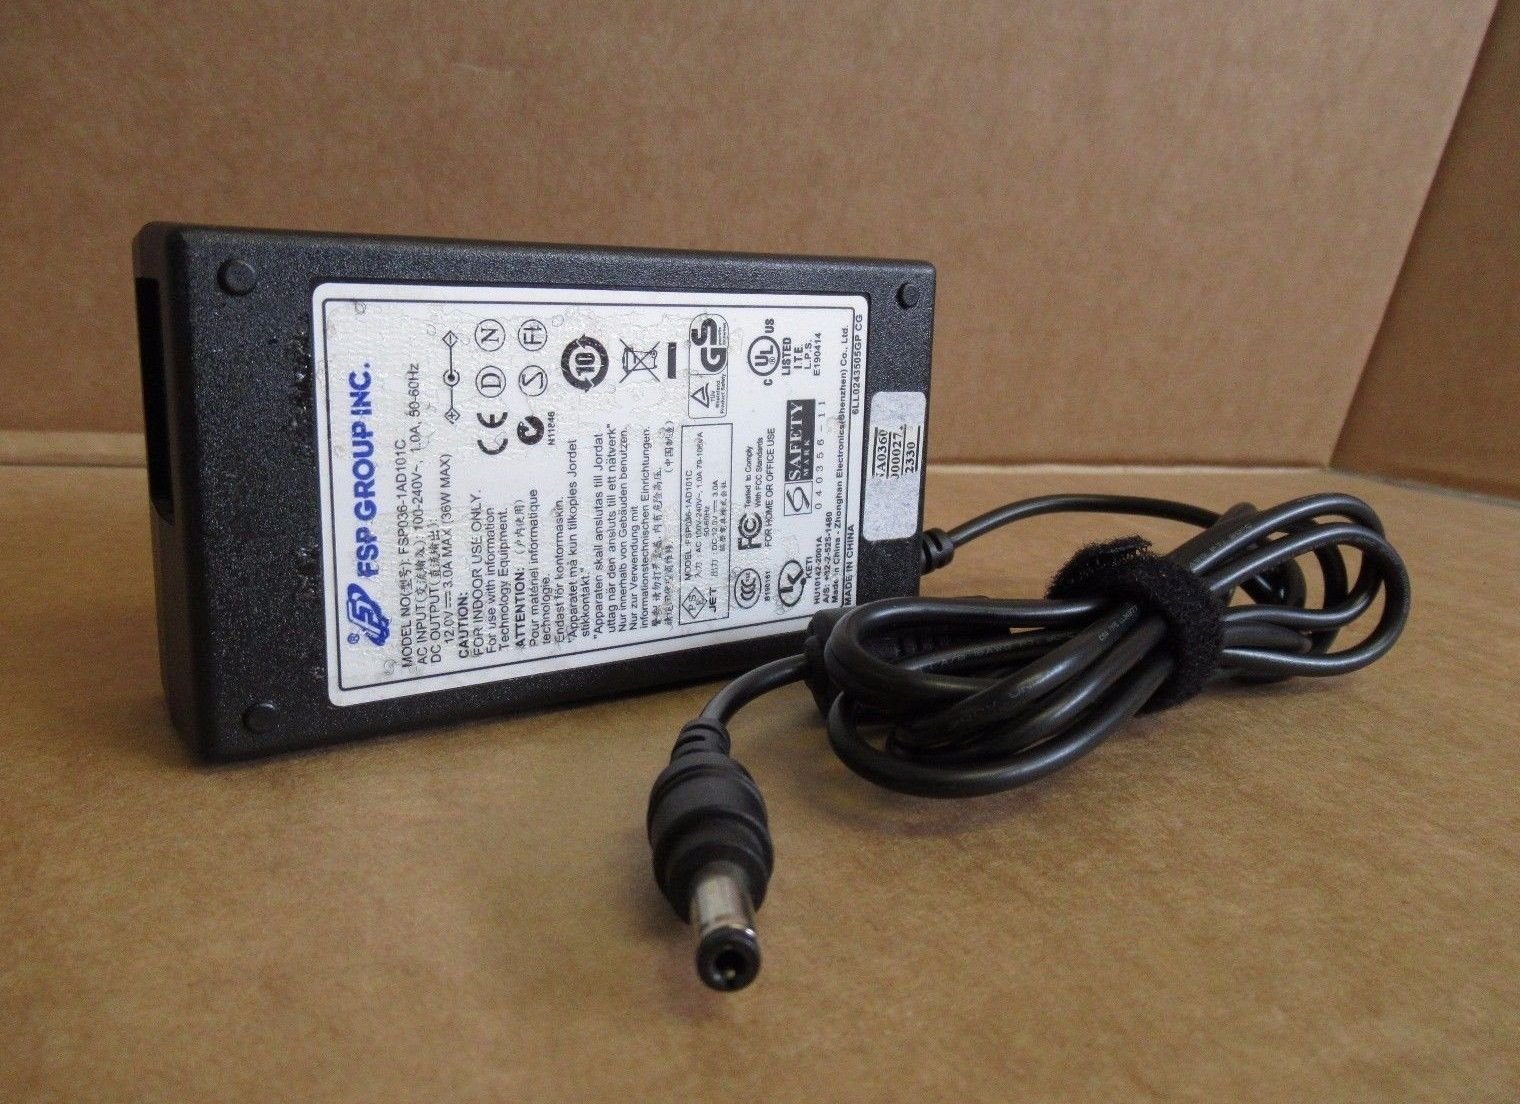 Fsp Group Fsp036 1ad101c Tft Lcd Dvd Hdd Ac Power Adapter Charger Products Accessories 3 Pin Plug Wiring Te 36w 12v 3a